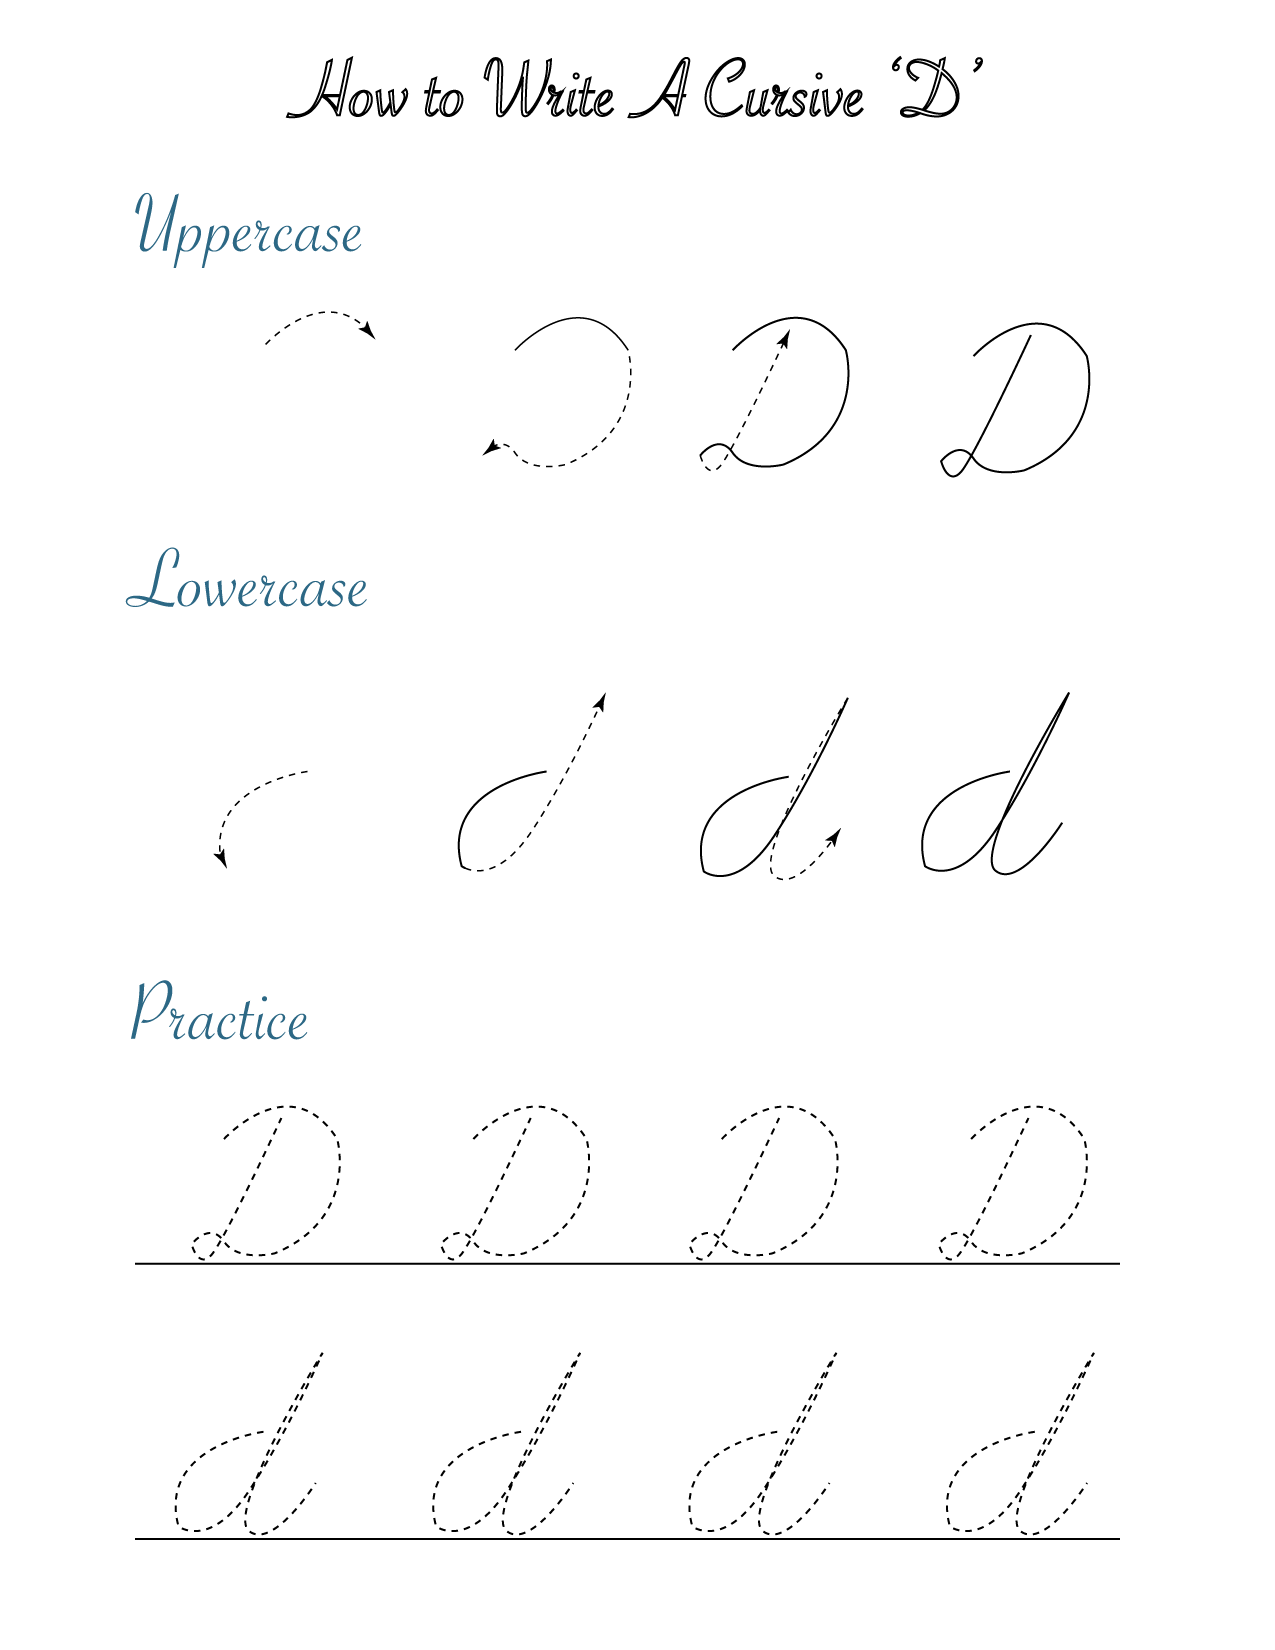 How to write a cursive 'D'